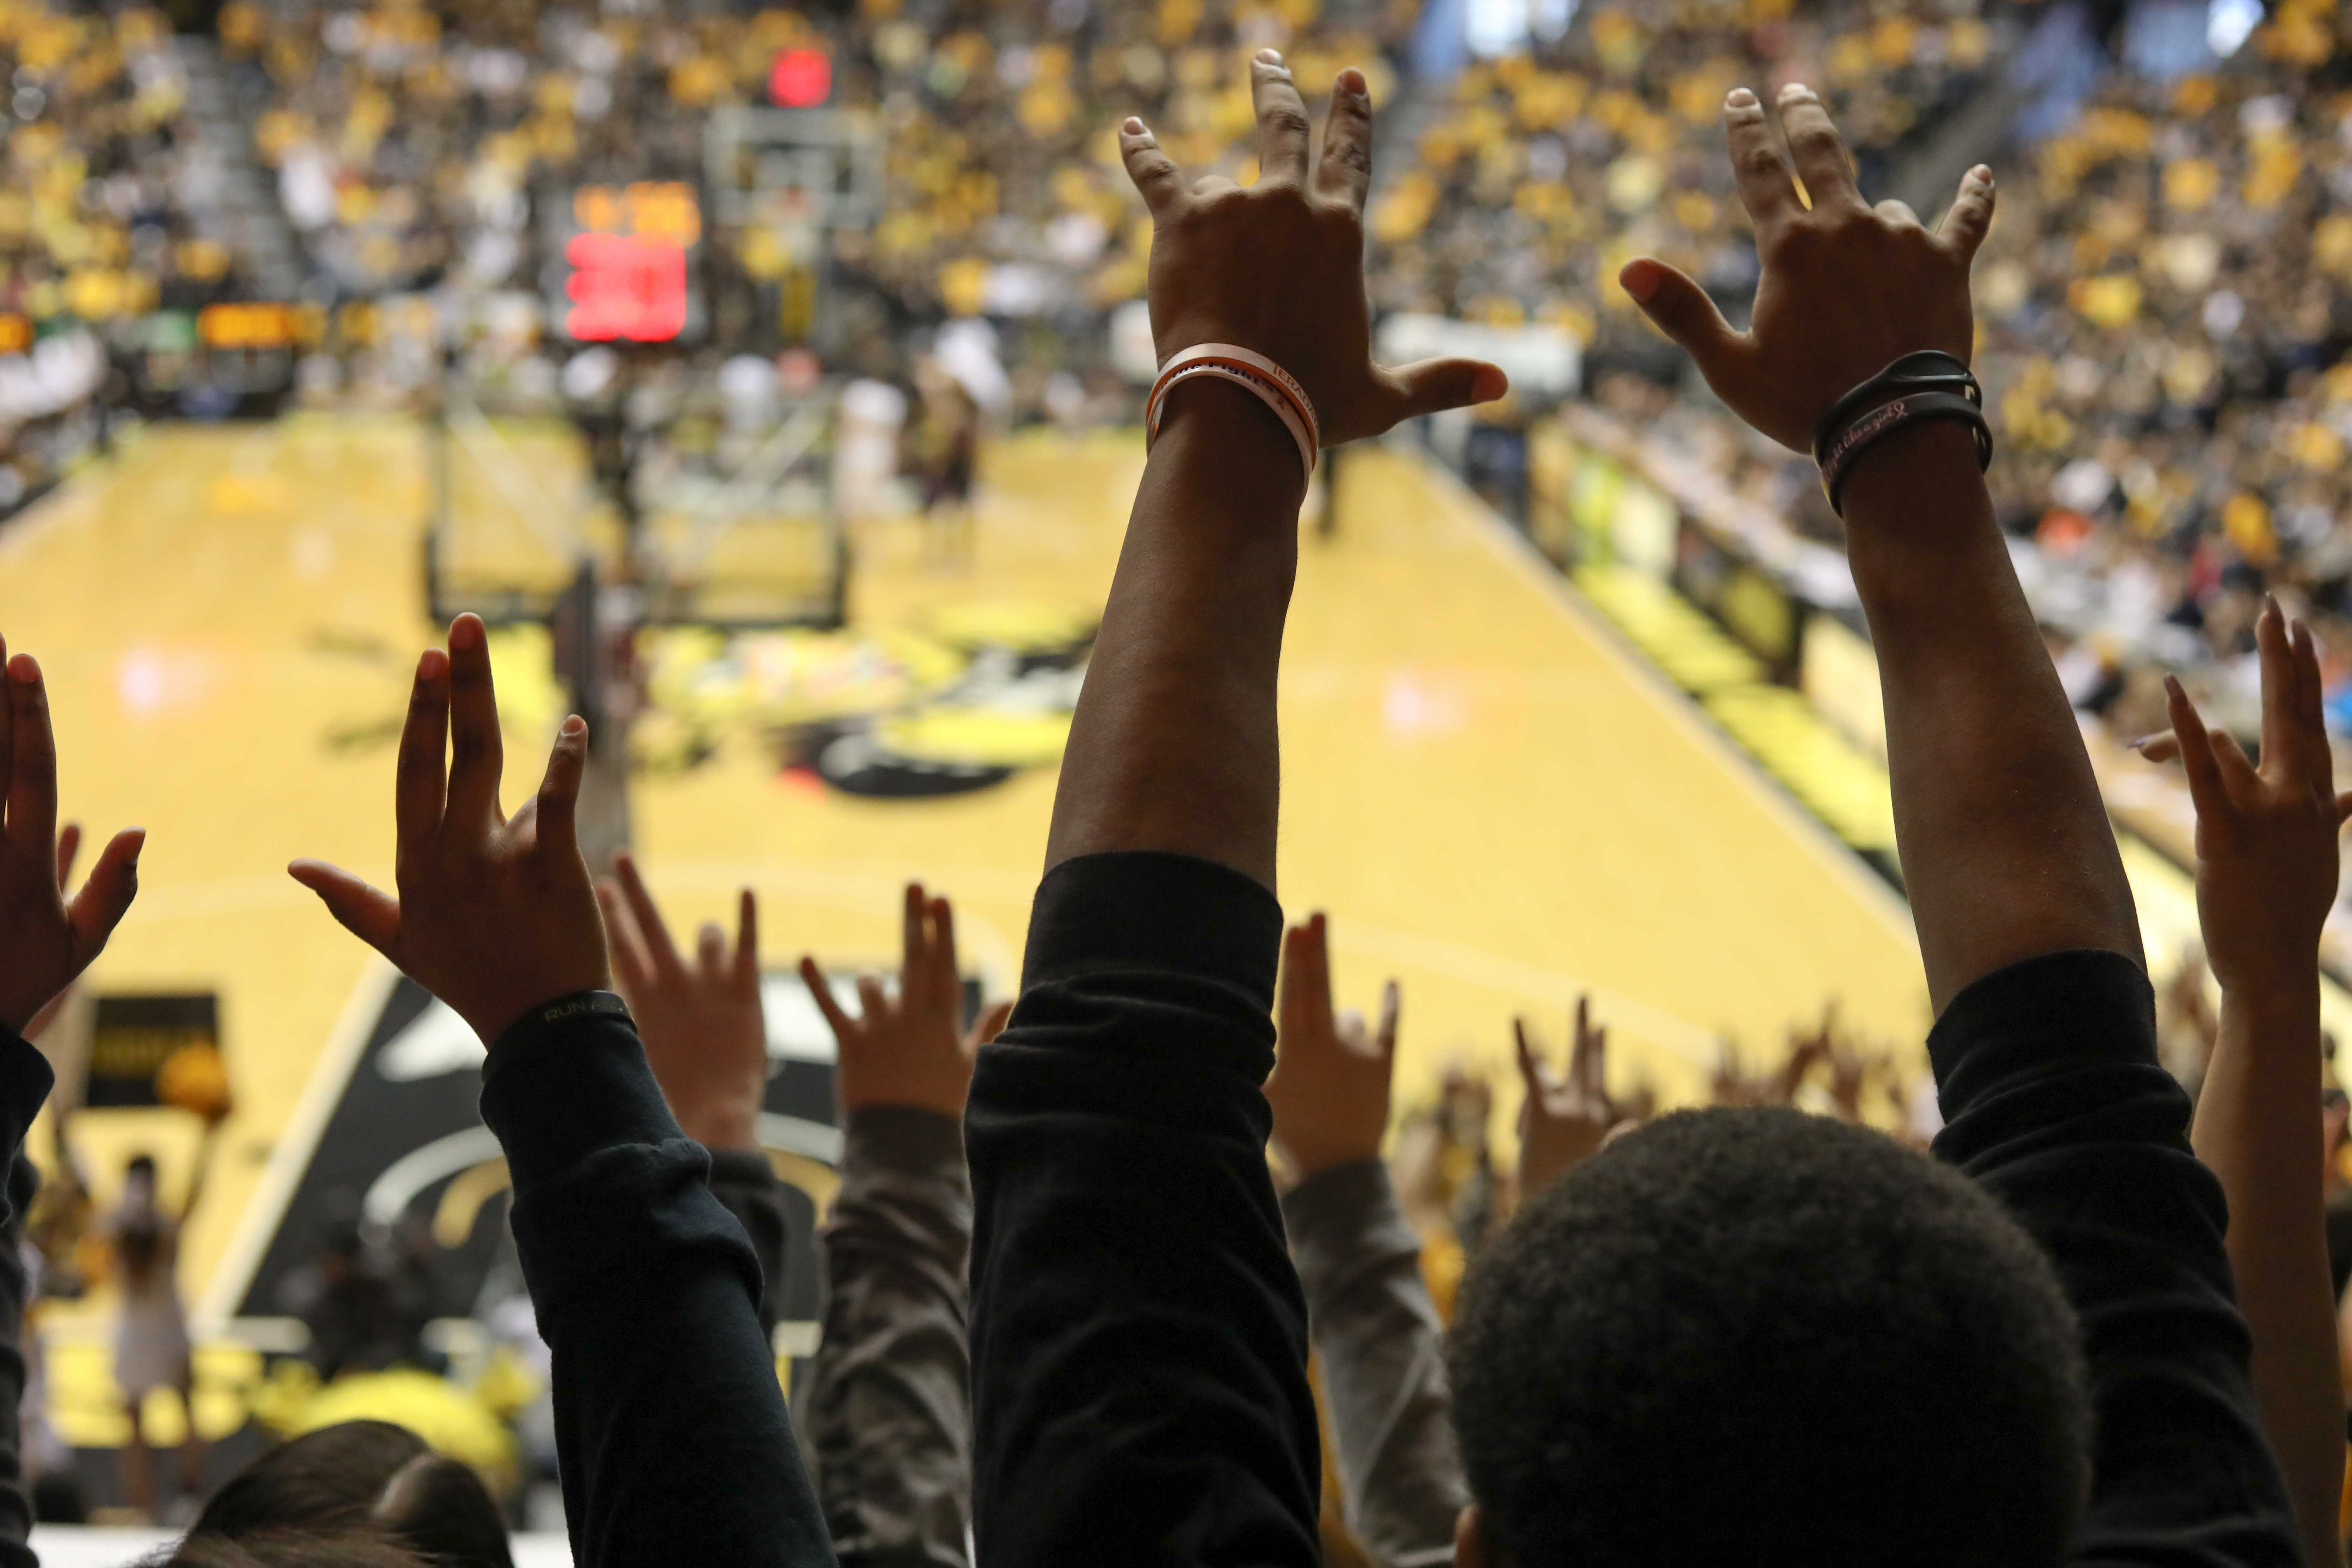 """Wichita State fans put their """"Shockers up"""" during the second half of Saturday's home game. (Feb. 18, 2017)"""